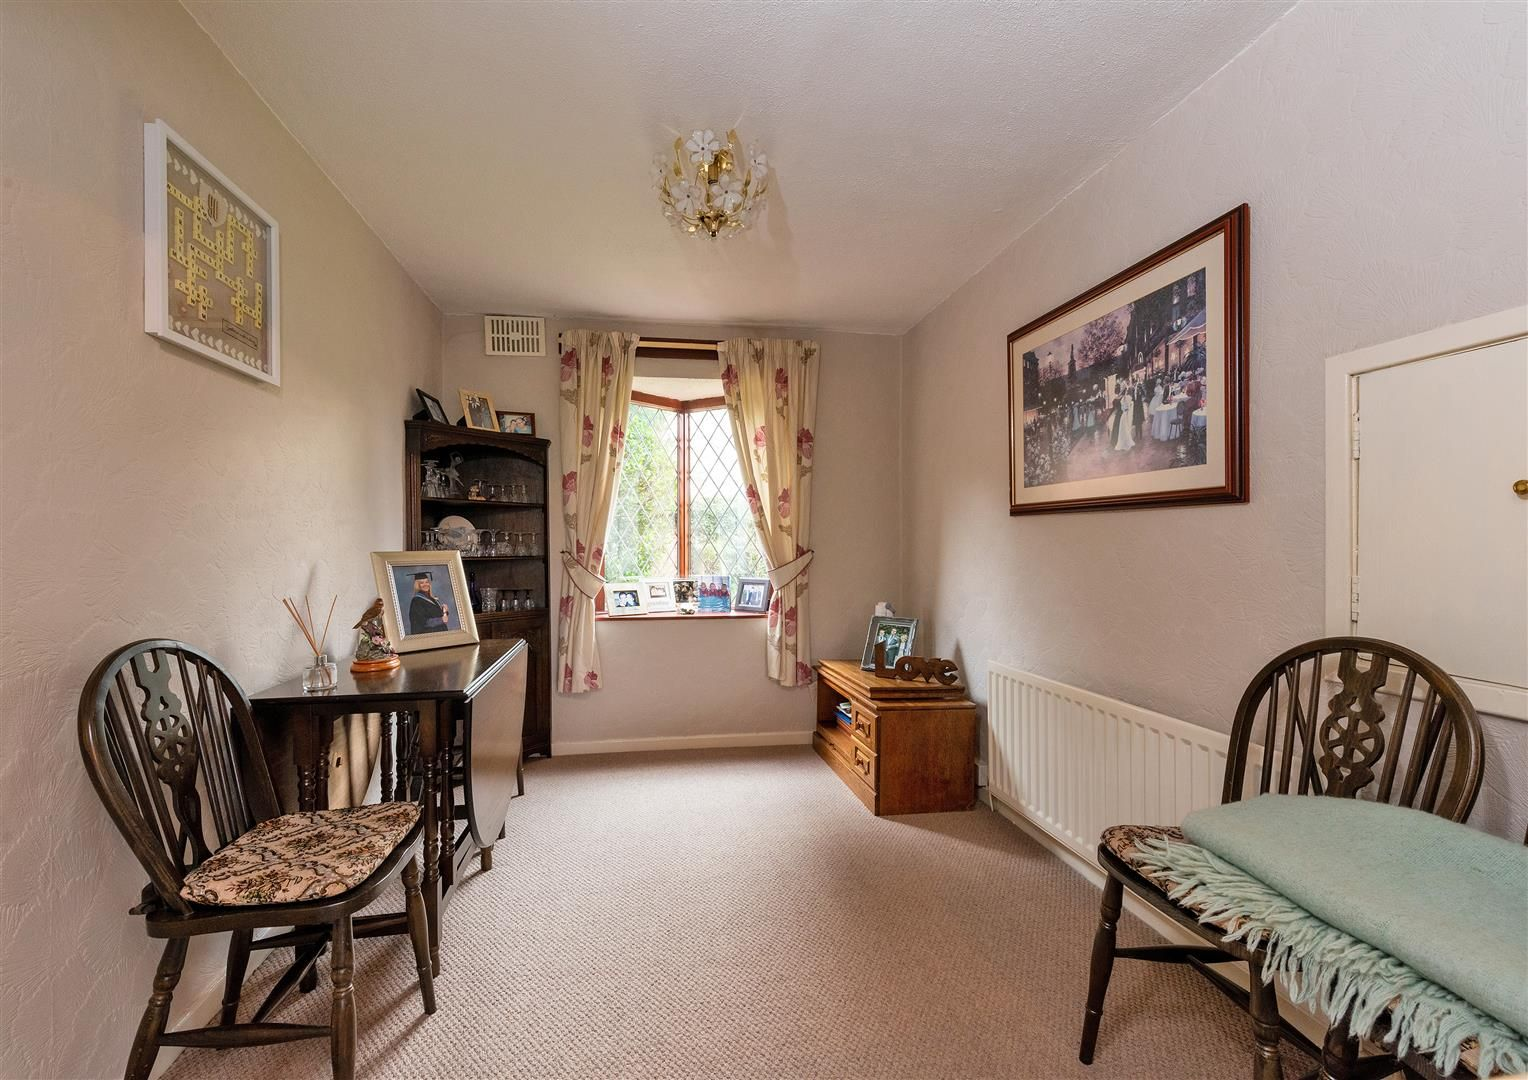 3 bed house for sale in Belbroughton  - Property Image 5